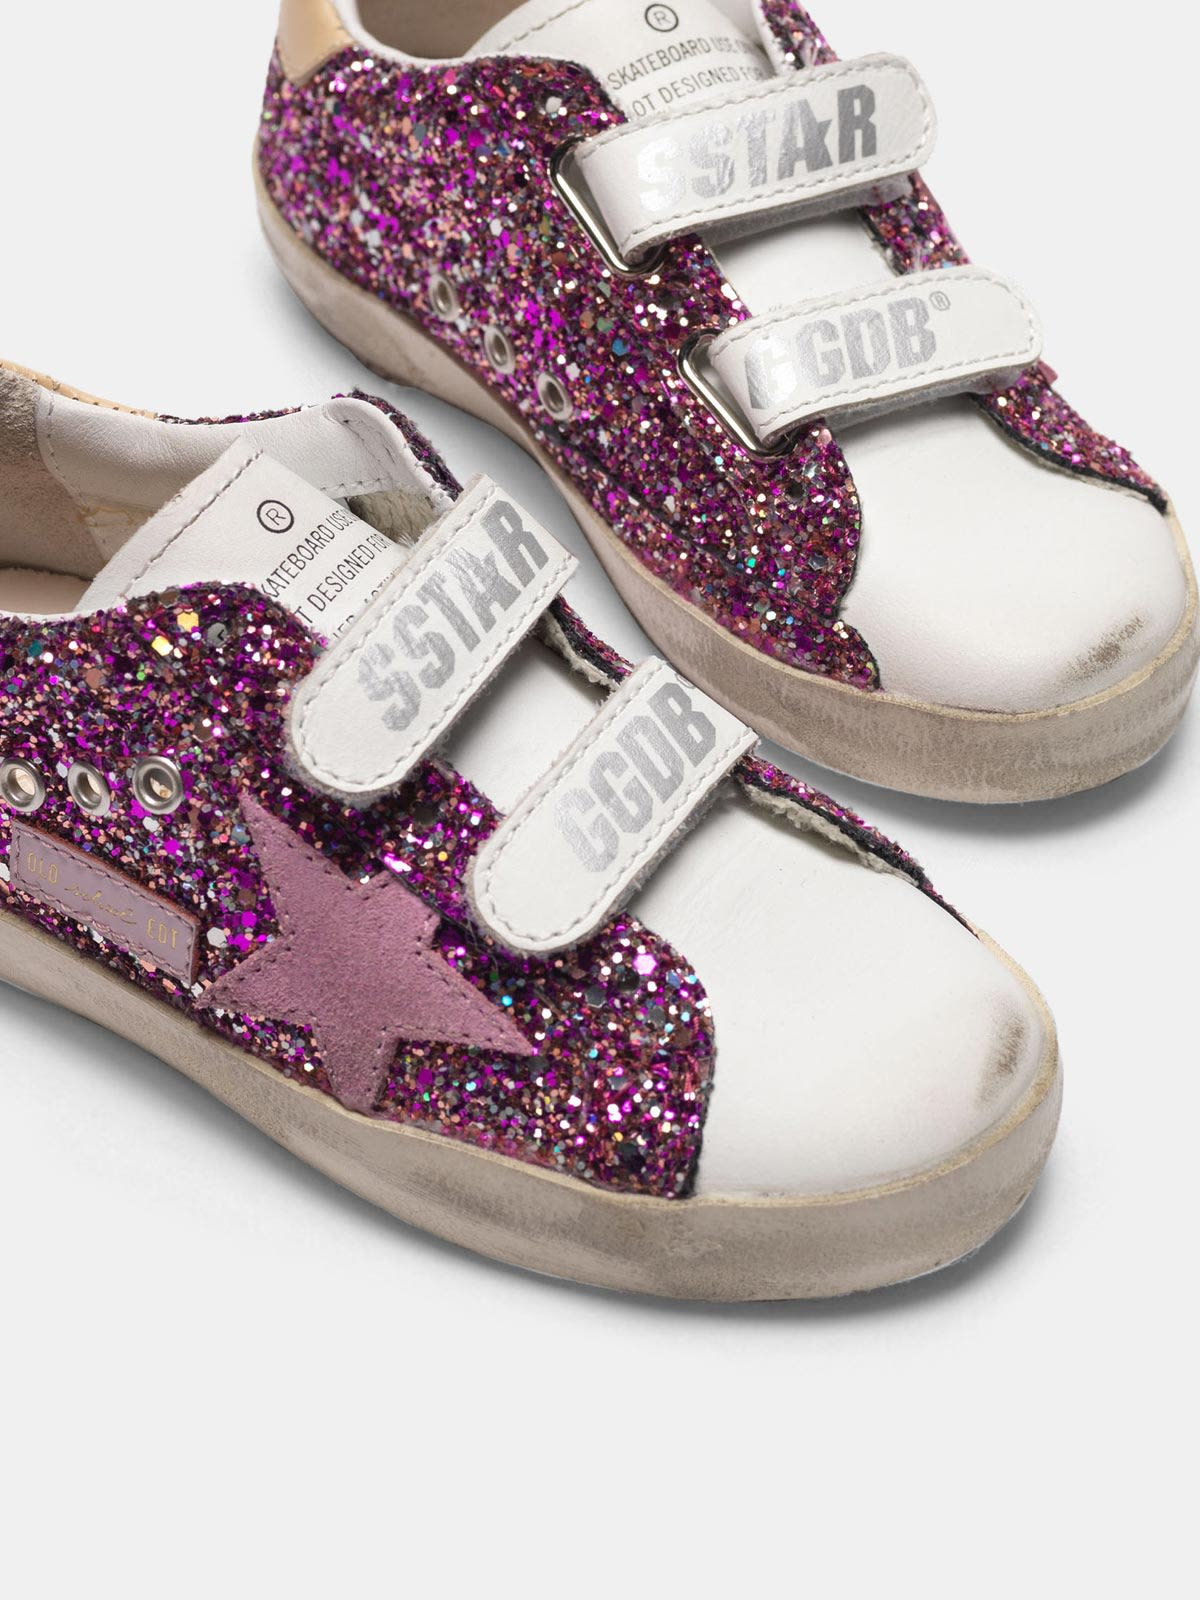 Golden Goose - Old School sneakers with fuchsia glitter and pink star in